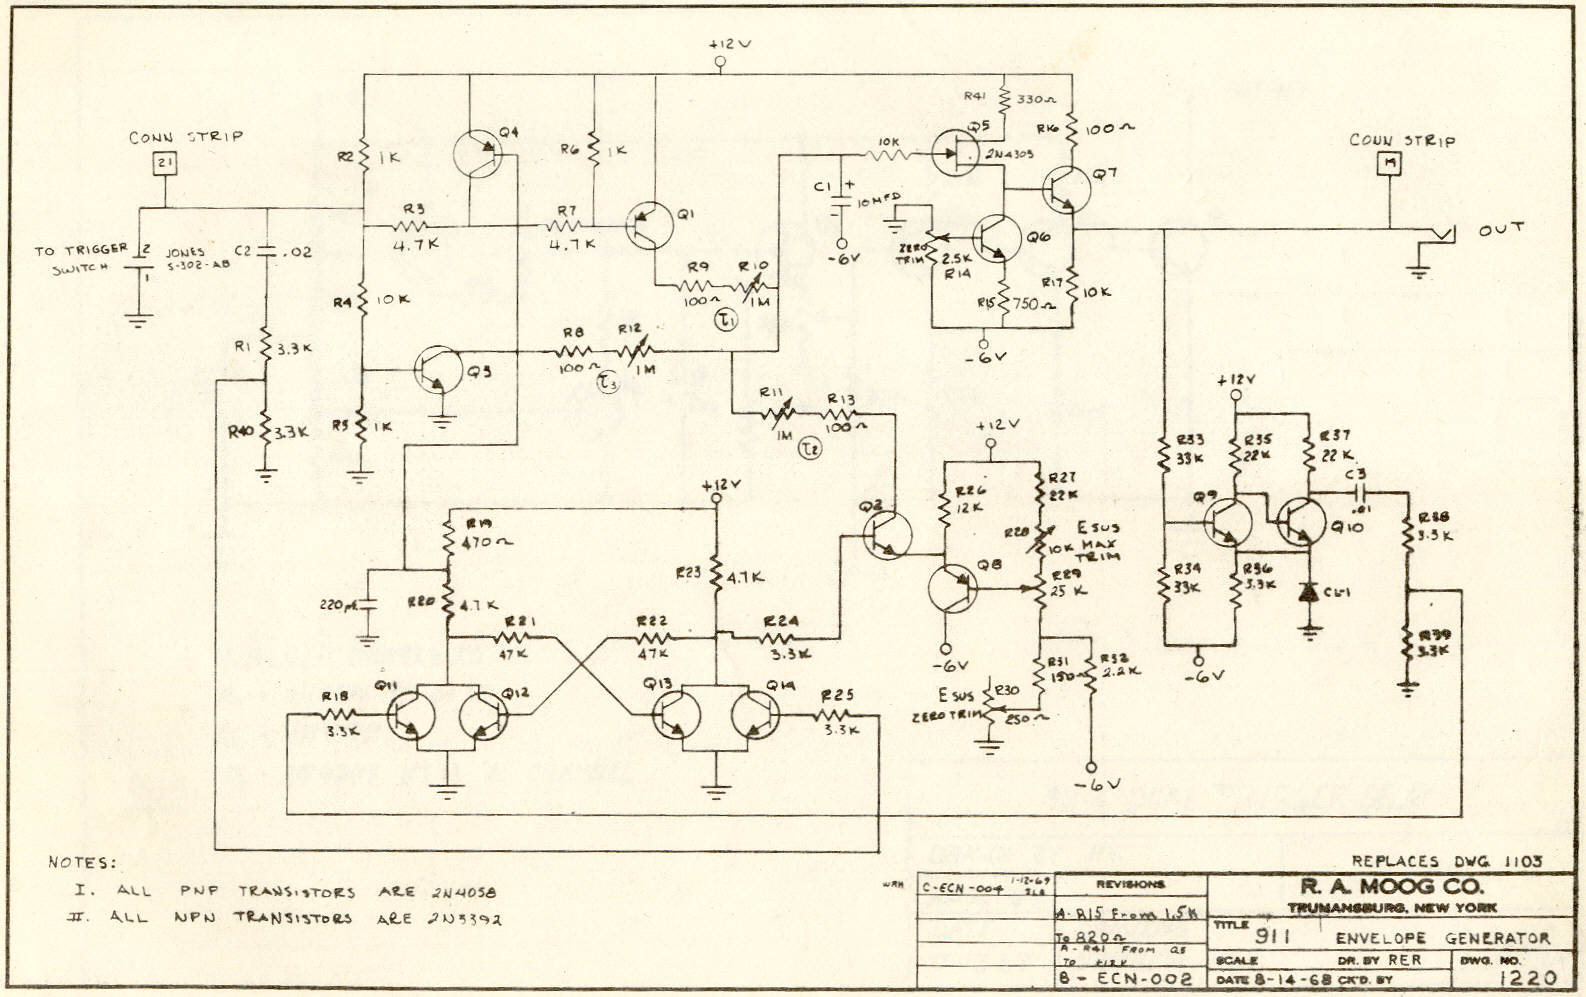 Moog Archives Envelope Schematic